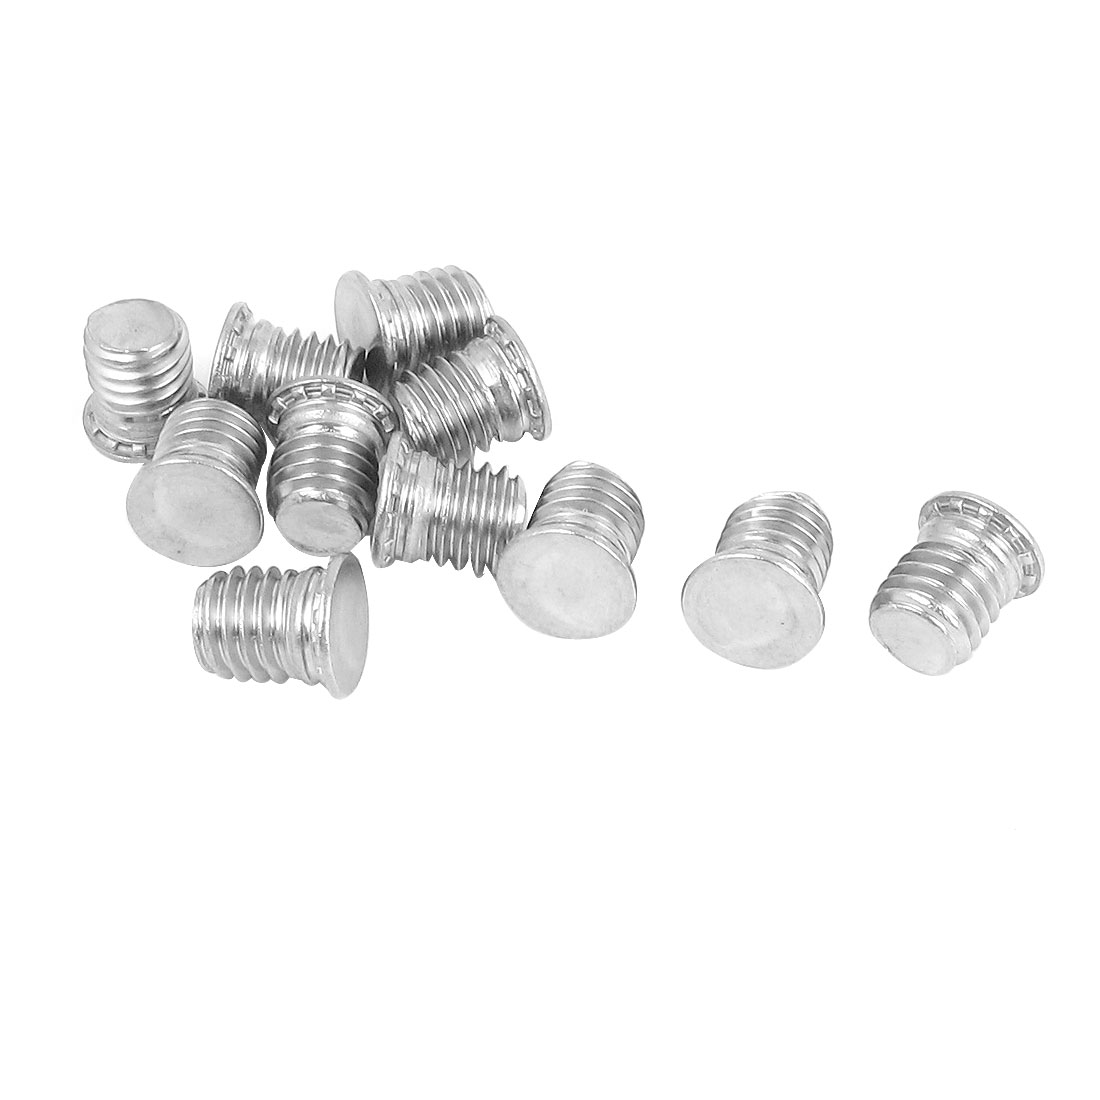 M8x10mm Flush Head Stainless Steel Self Clinching Threaded Studs Fastener 10pcs